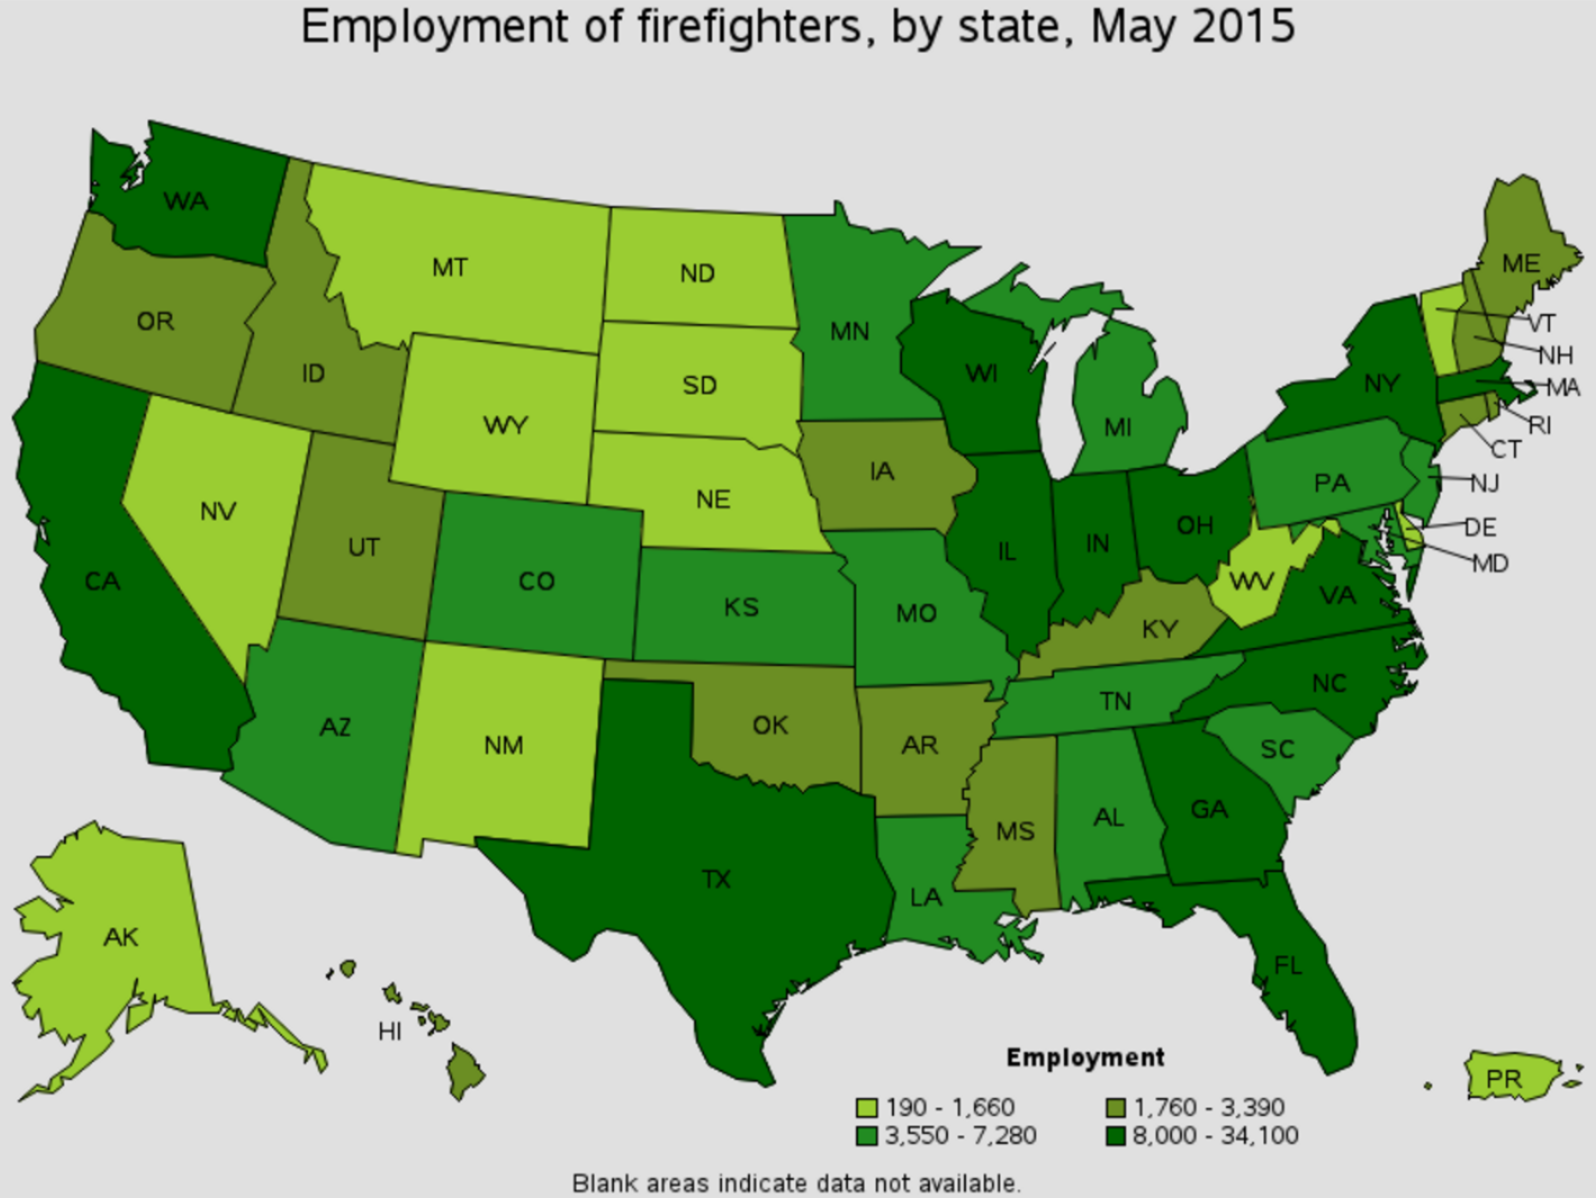 firefighter job outlook by state Los Angeles California